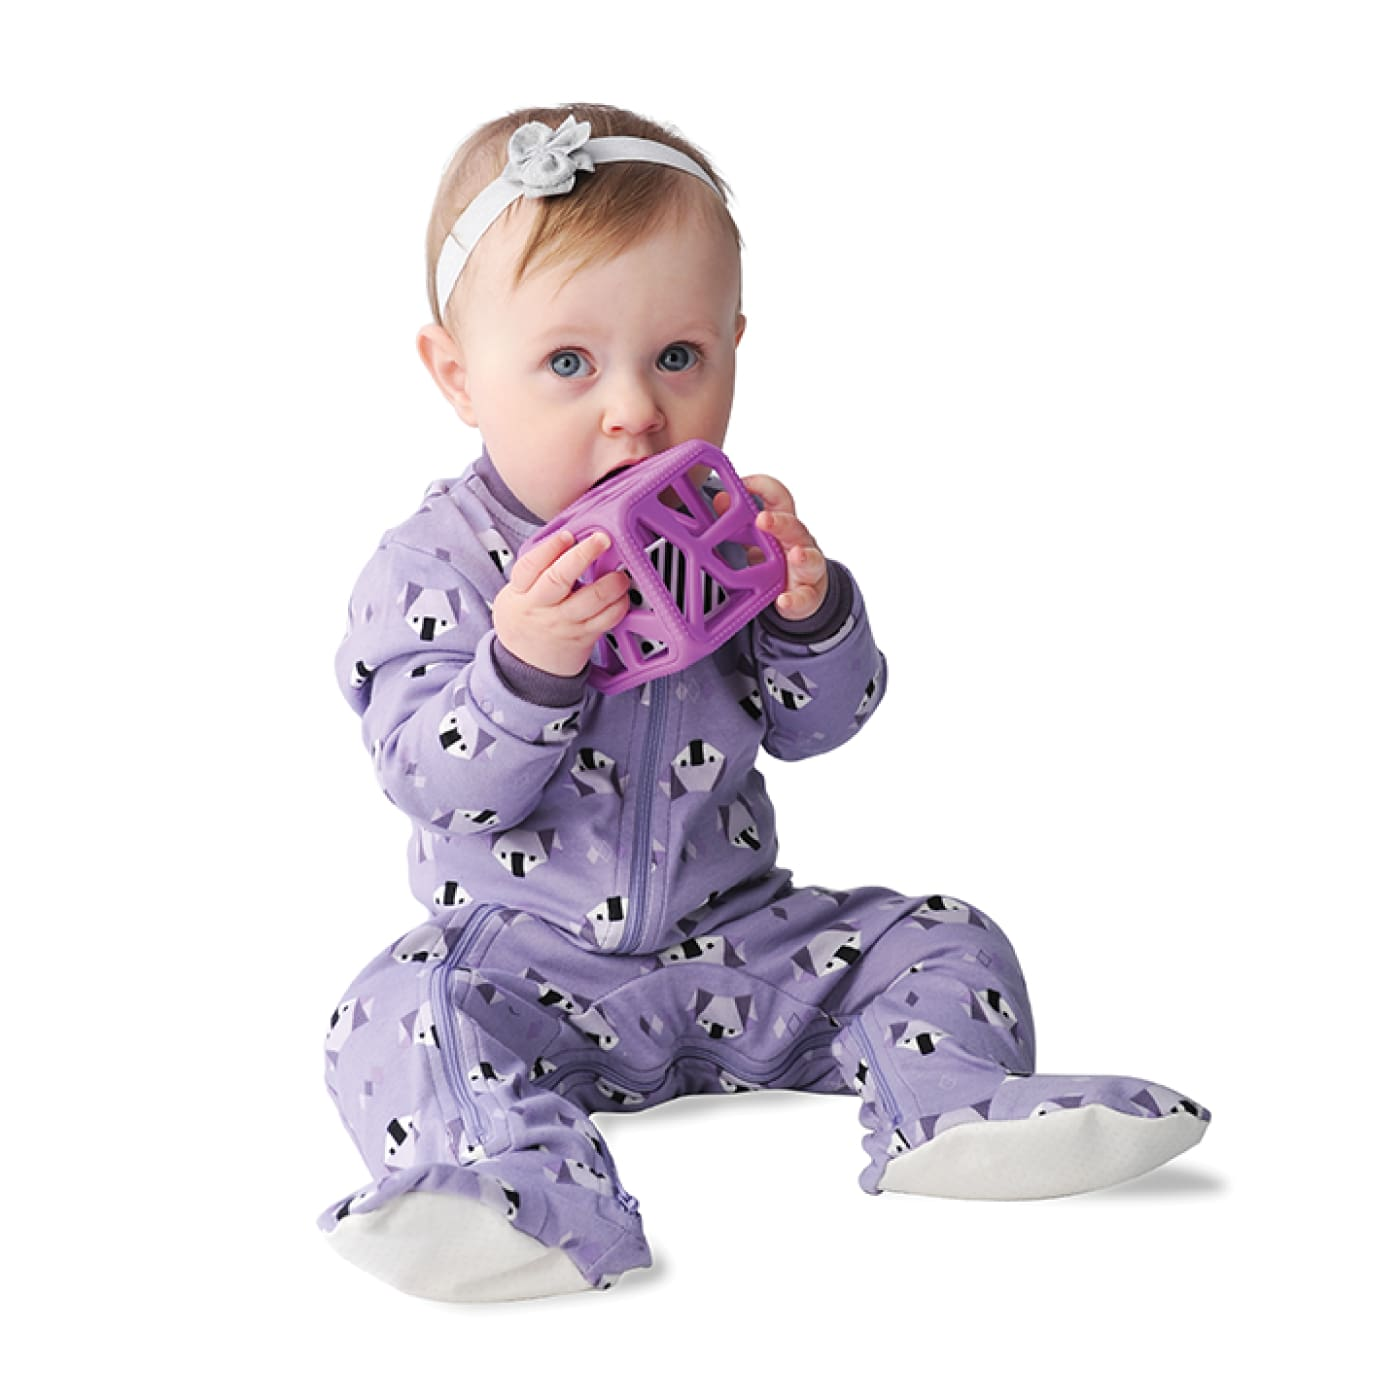 Malarkey Kids Chew Cube - Purple - NURSING & FEEDING - TEETHERS/TEETHING JEWELLERY